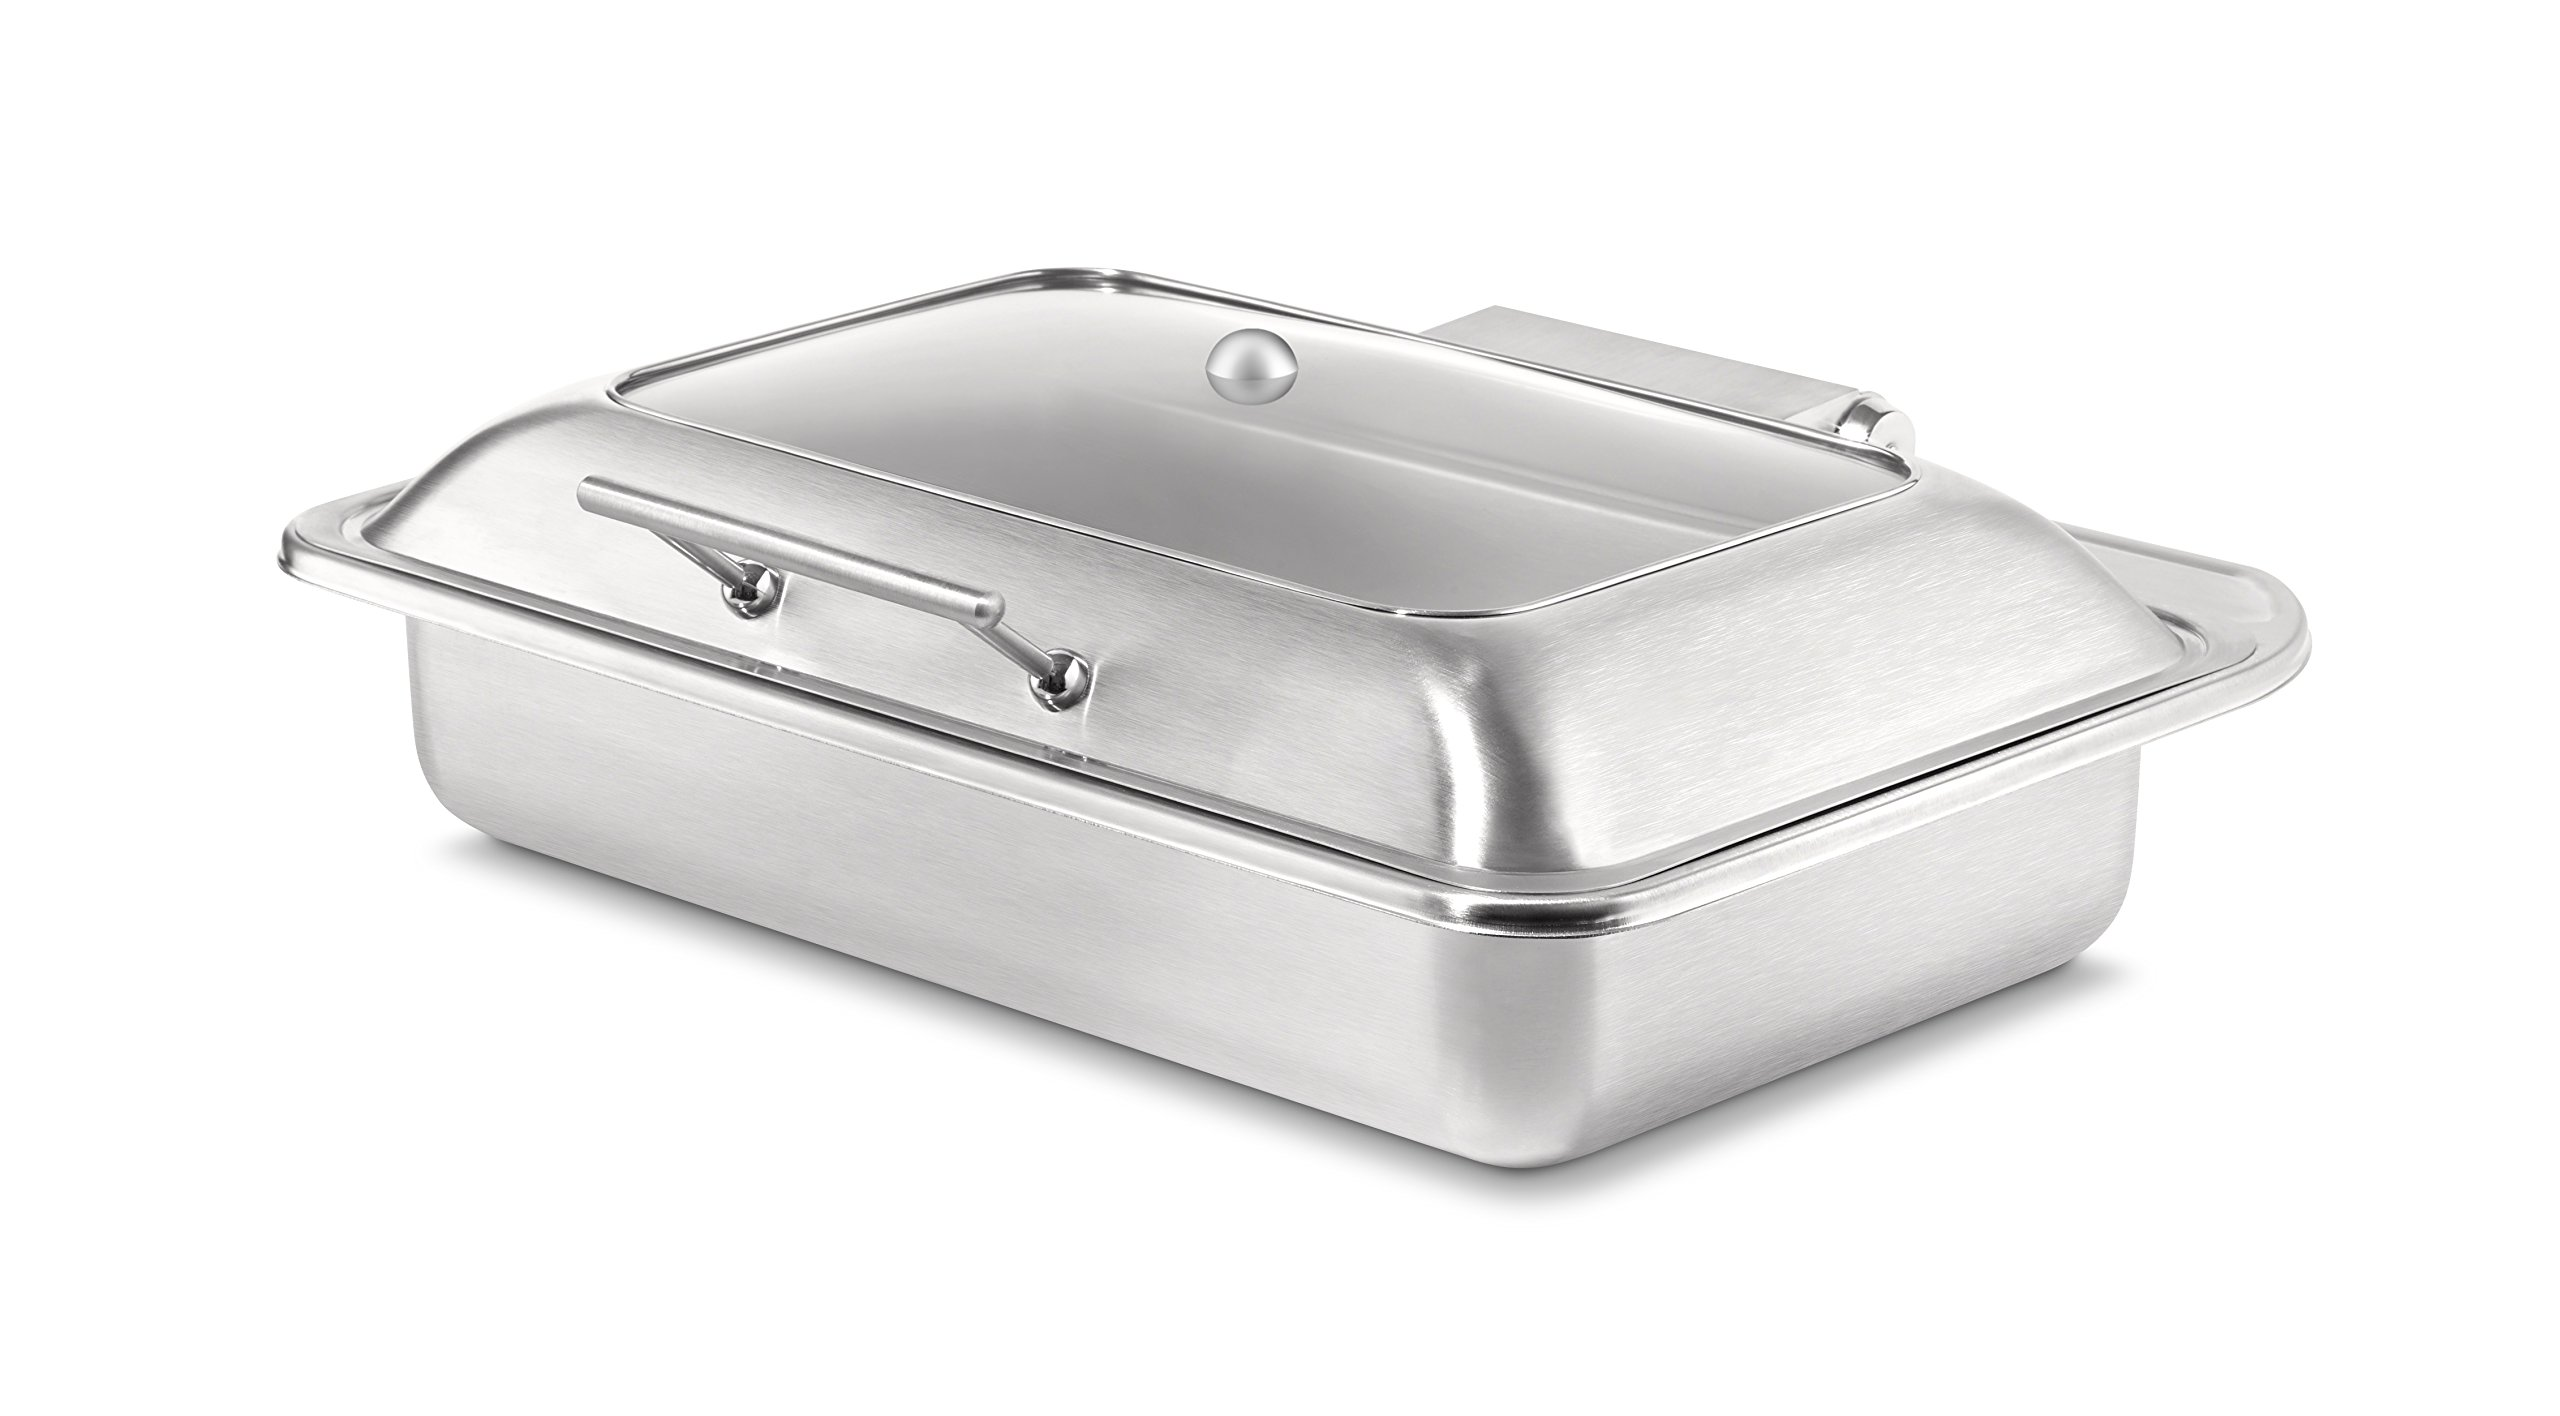 Rosseto SM249 Multi-Chef Soft Closing Lid, Stainless Steel by Rosseto